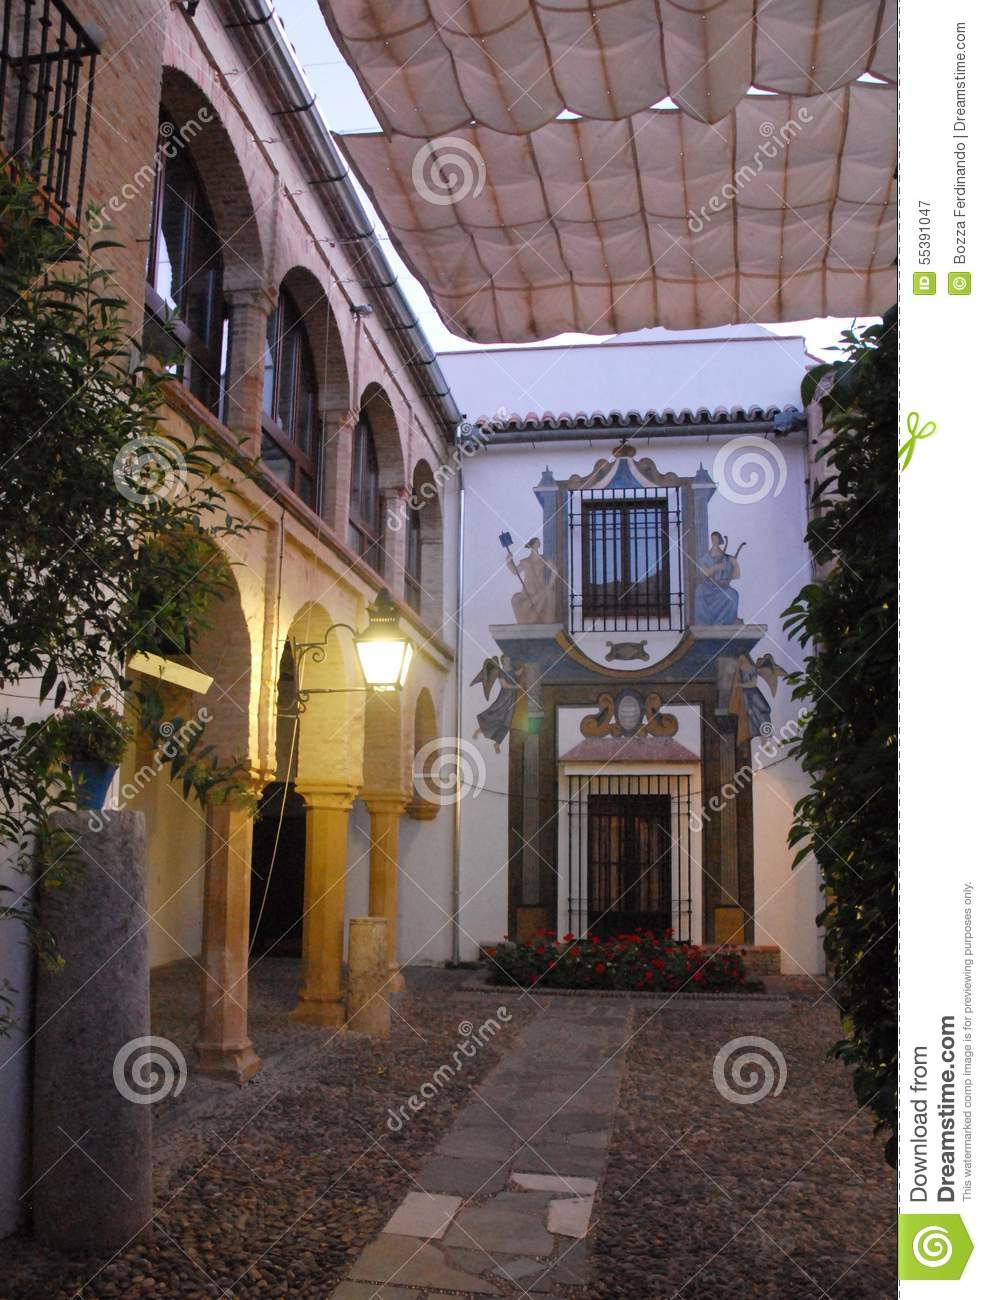 Courtyard covered with towels streetlight lit evening in Cordoba